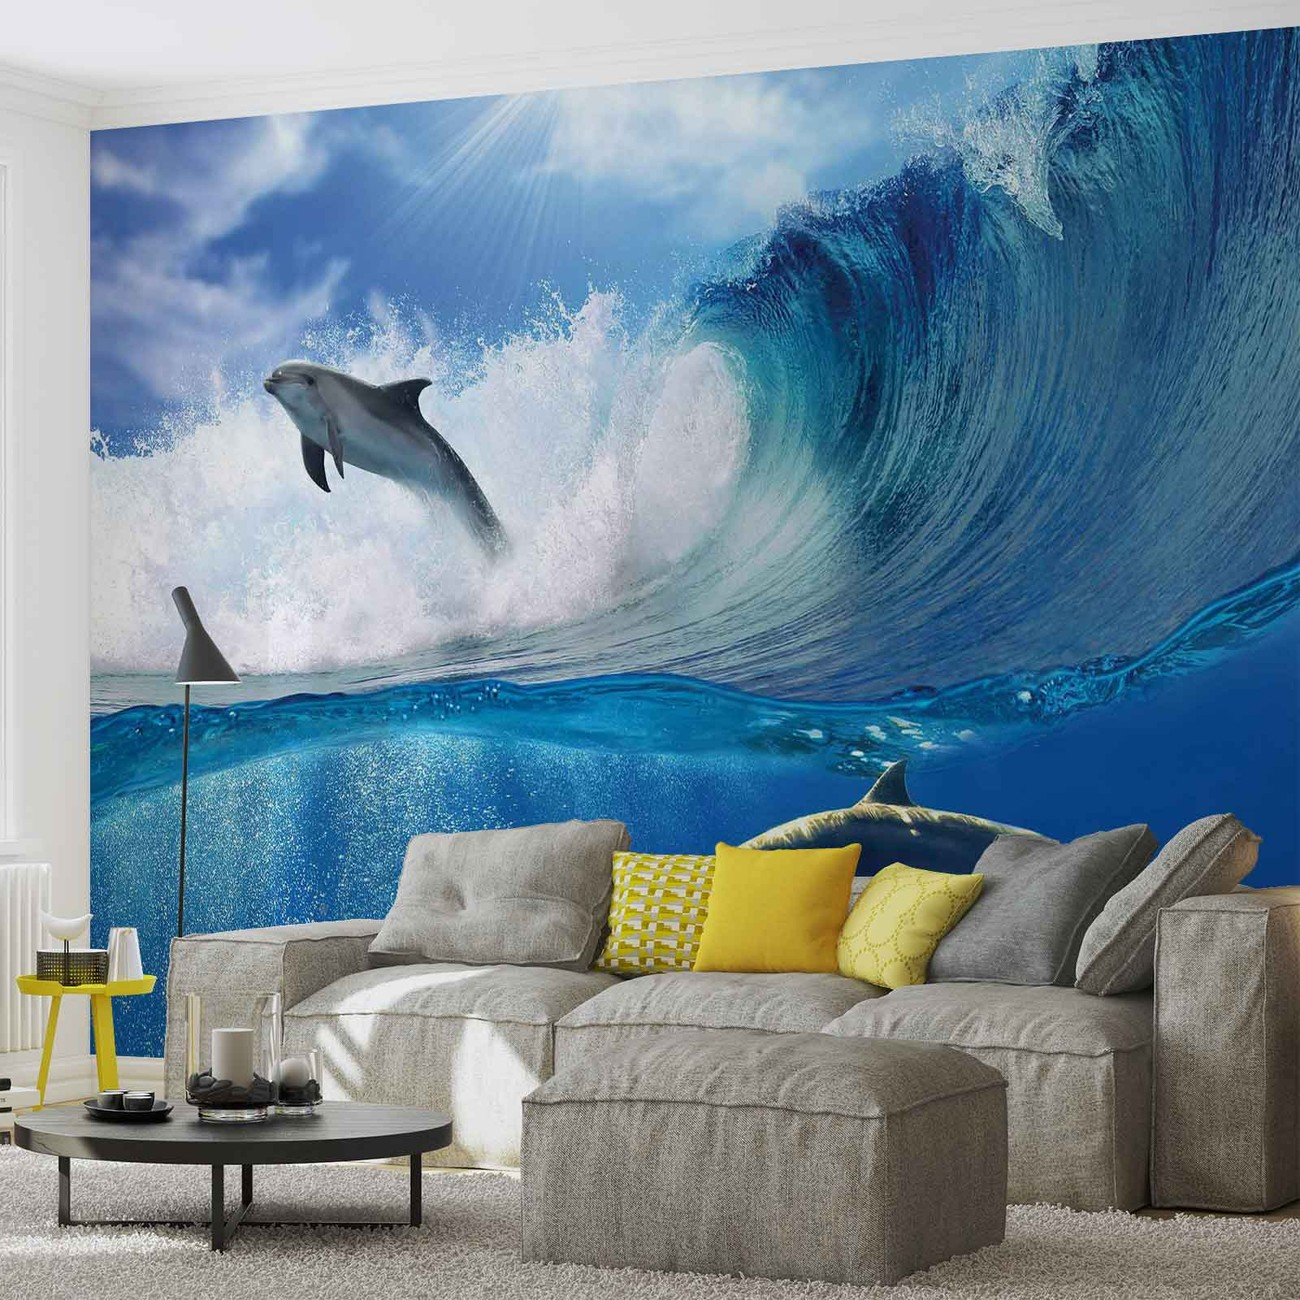 dauphins mer vague nature poster mural papier peint acheter le sur. Black Bedroom Furniture Sets. Home Design Ideas